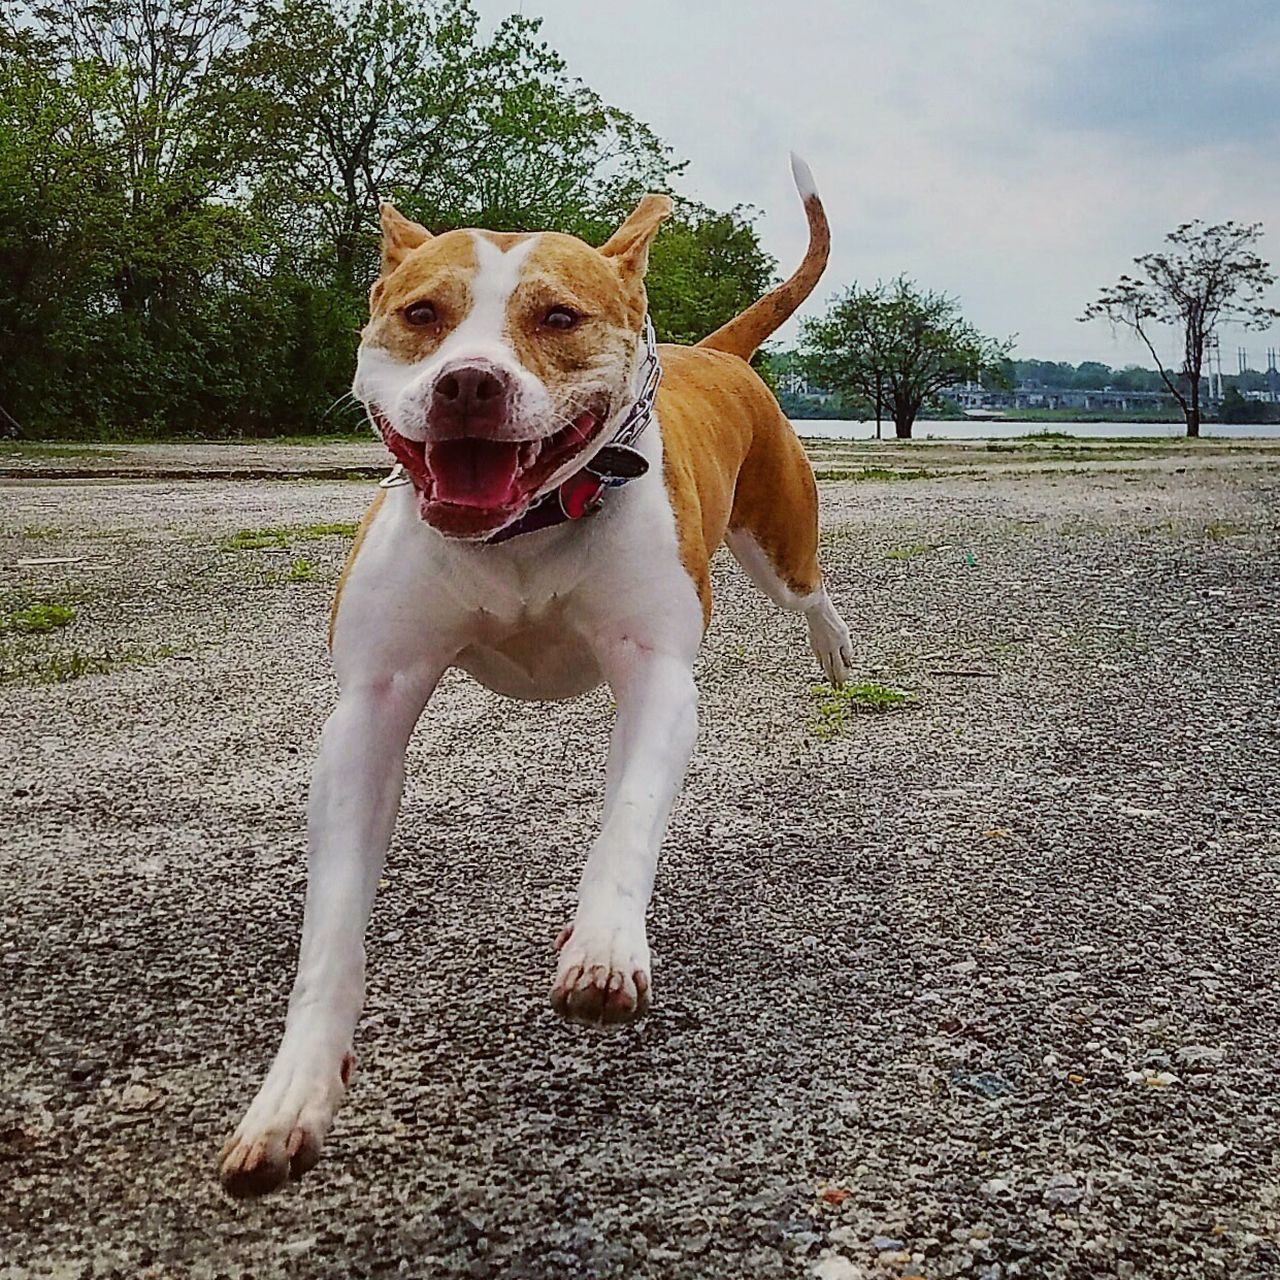 Dog Pets One Animal Domestic Animals Animal Themes Mammal Day Outdoors Protruding No People Full Length Sky Pitbull Pitbullove Best Friend